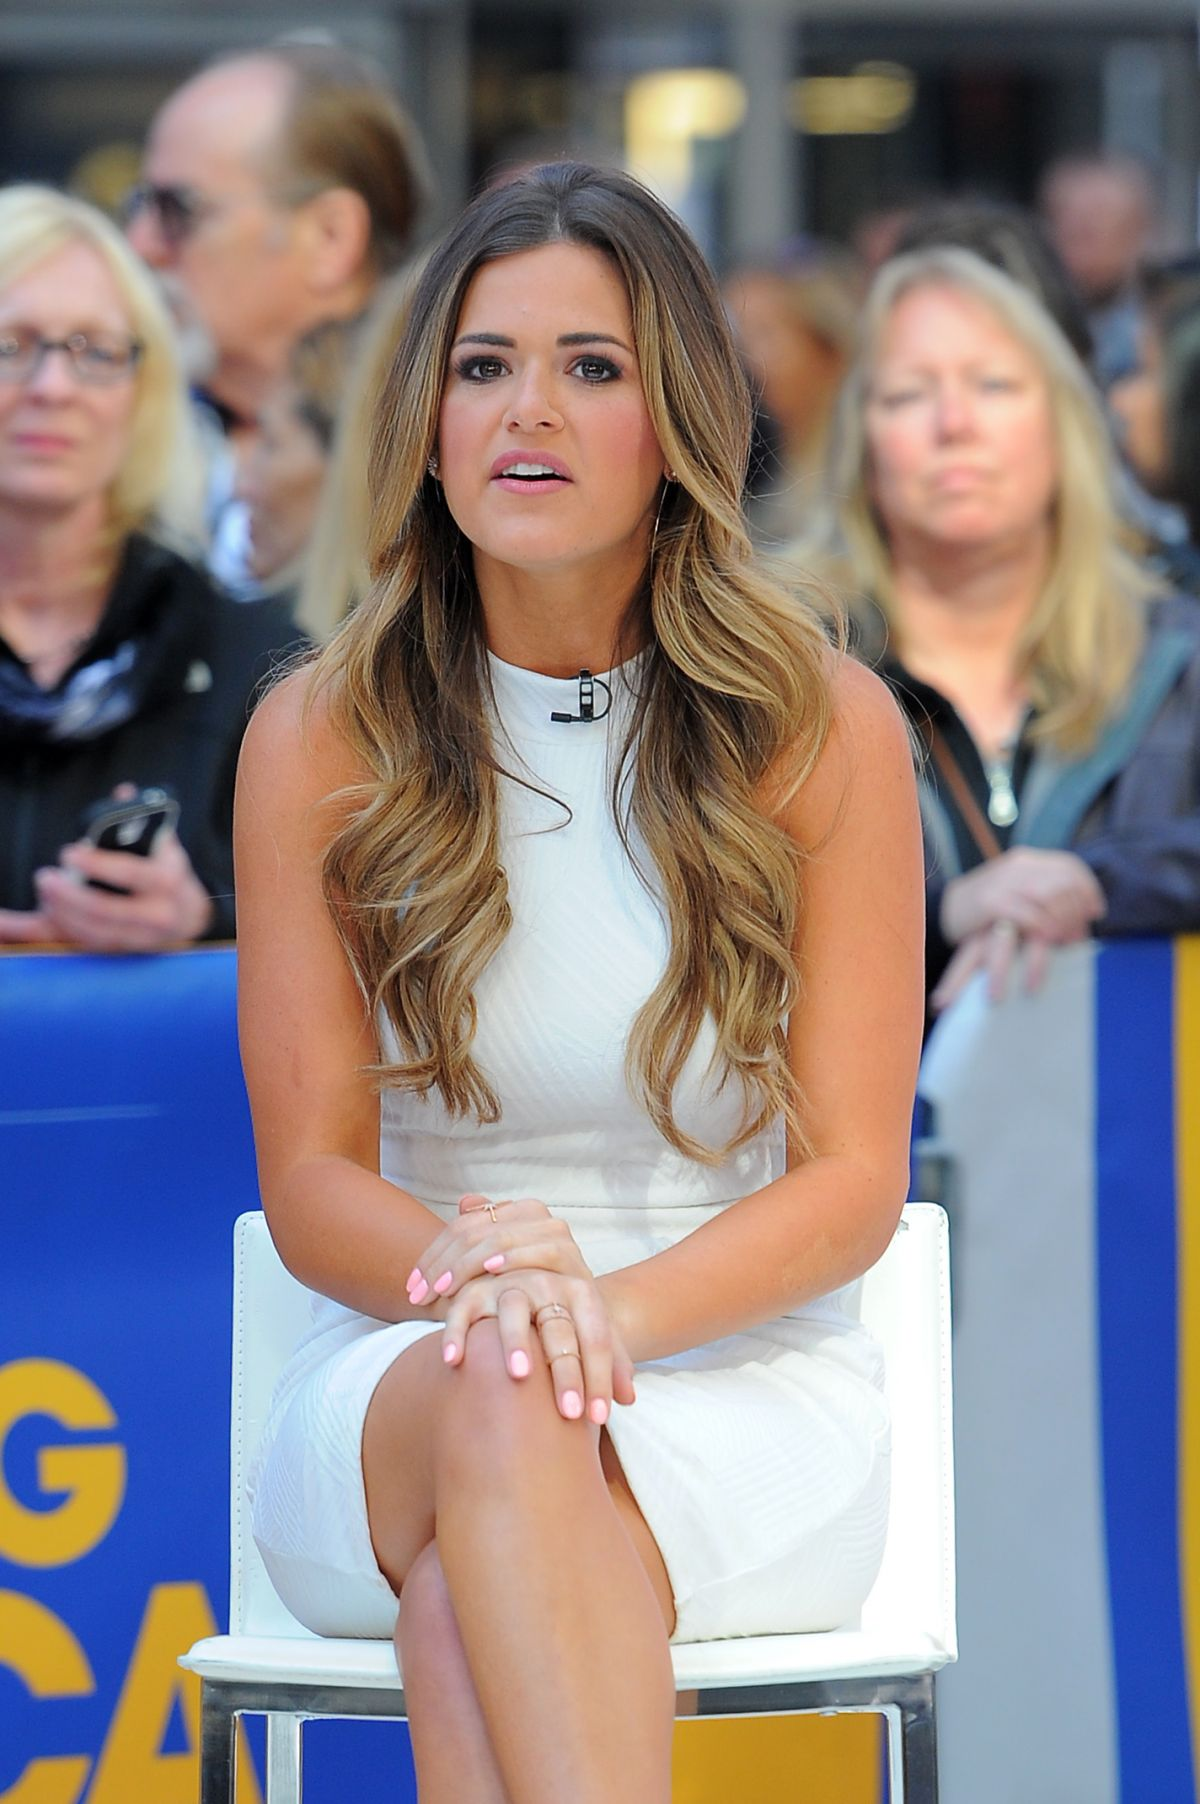 JOJO FLETCHER At Good Morning America In New York 05232016 HawtCelebs